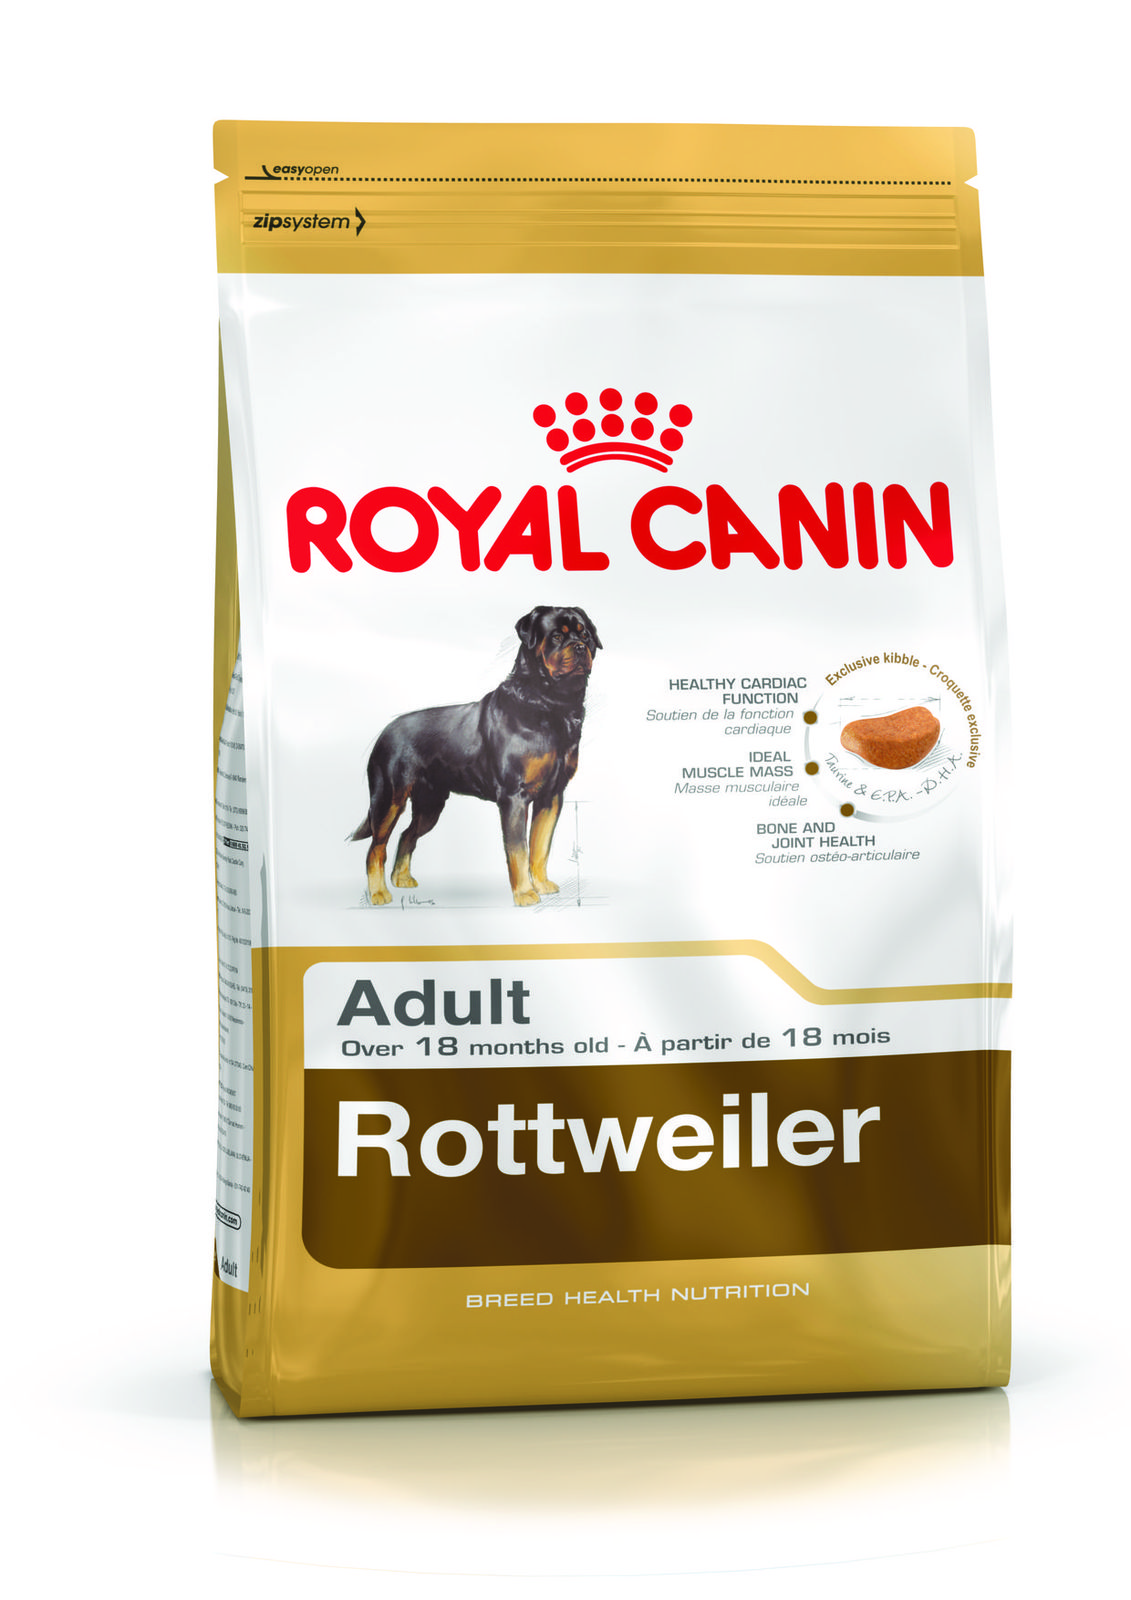 This Formula Contains Specific Nutrients To Help Support Good Cardiac Function Enriched With Taurine Royal Canin Dog Food Dog Food Comparison Dog Food Online